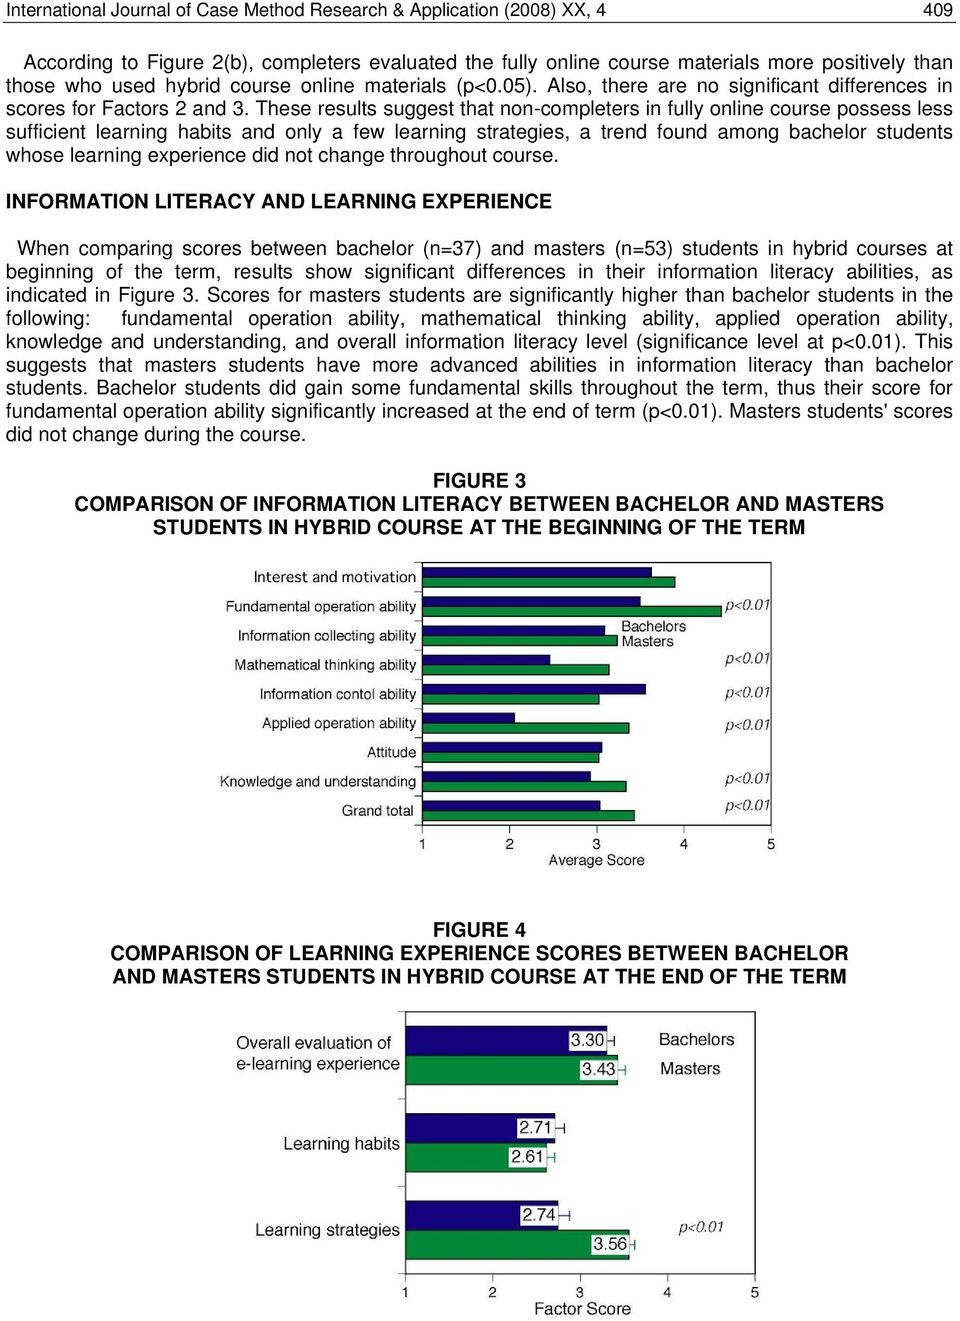 These results suggest that non-completers in fully online course possess less sufficient learning habits and only a few learning strategies, a trend found among bachelor students whose learning